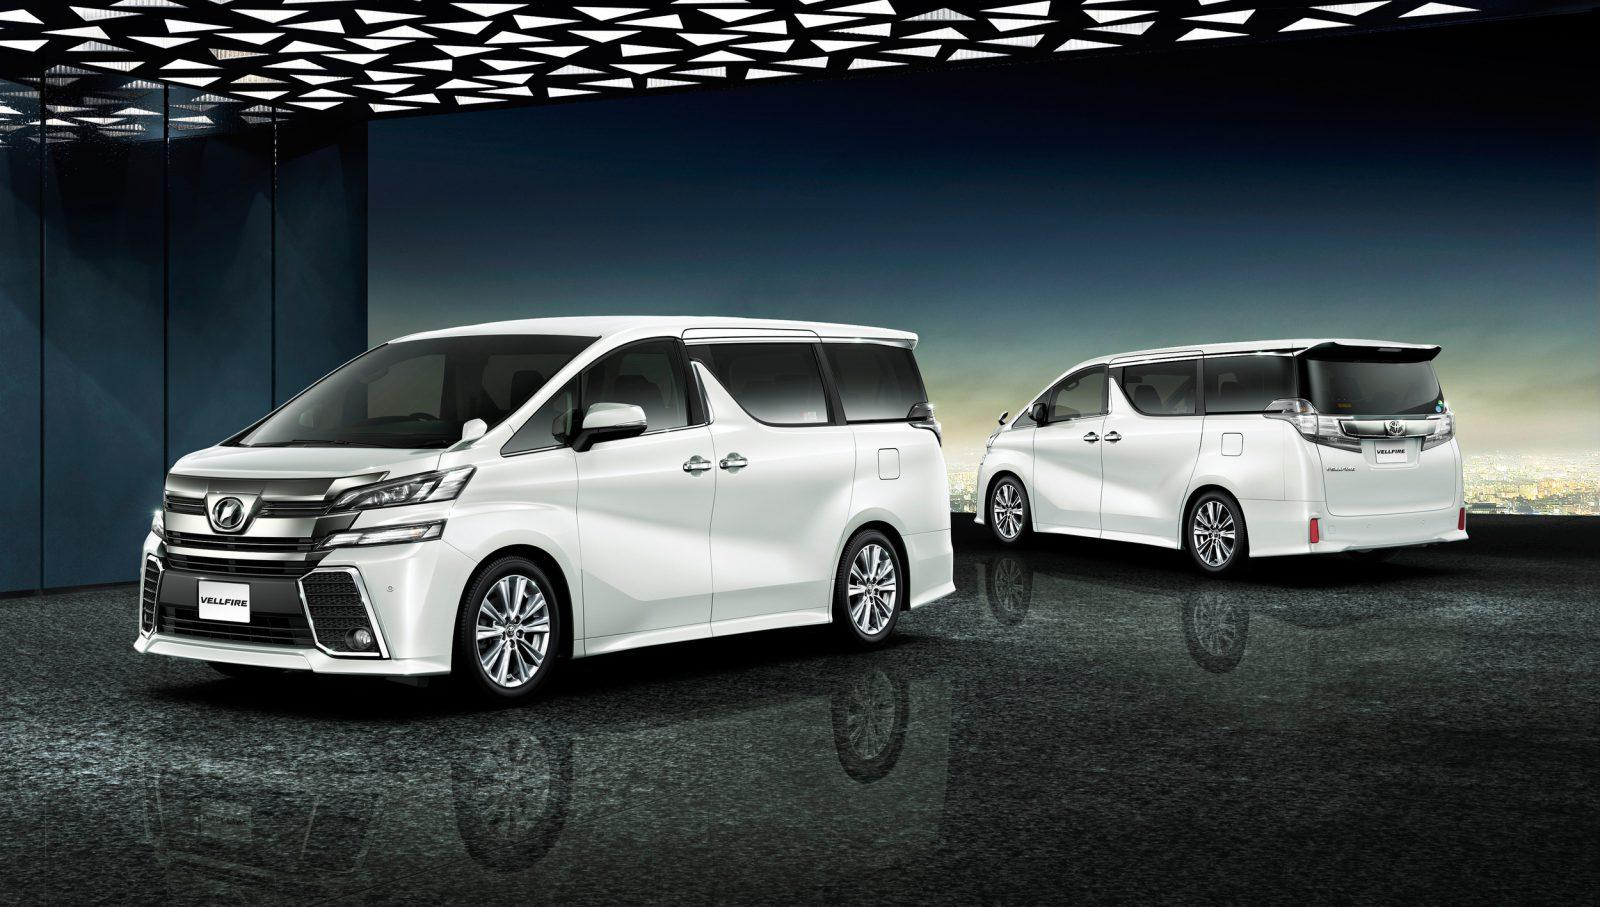 harga all new vellfire grand avanza autonetmagz nissan elgrand vs toyota comparison car from japan